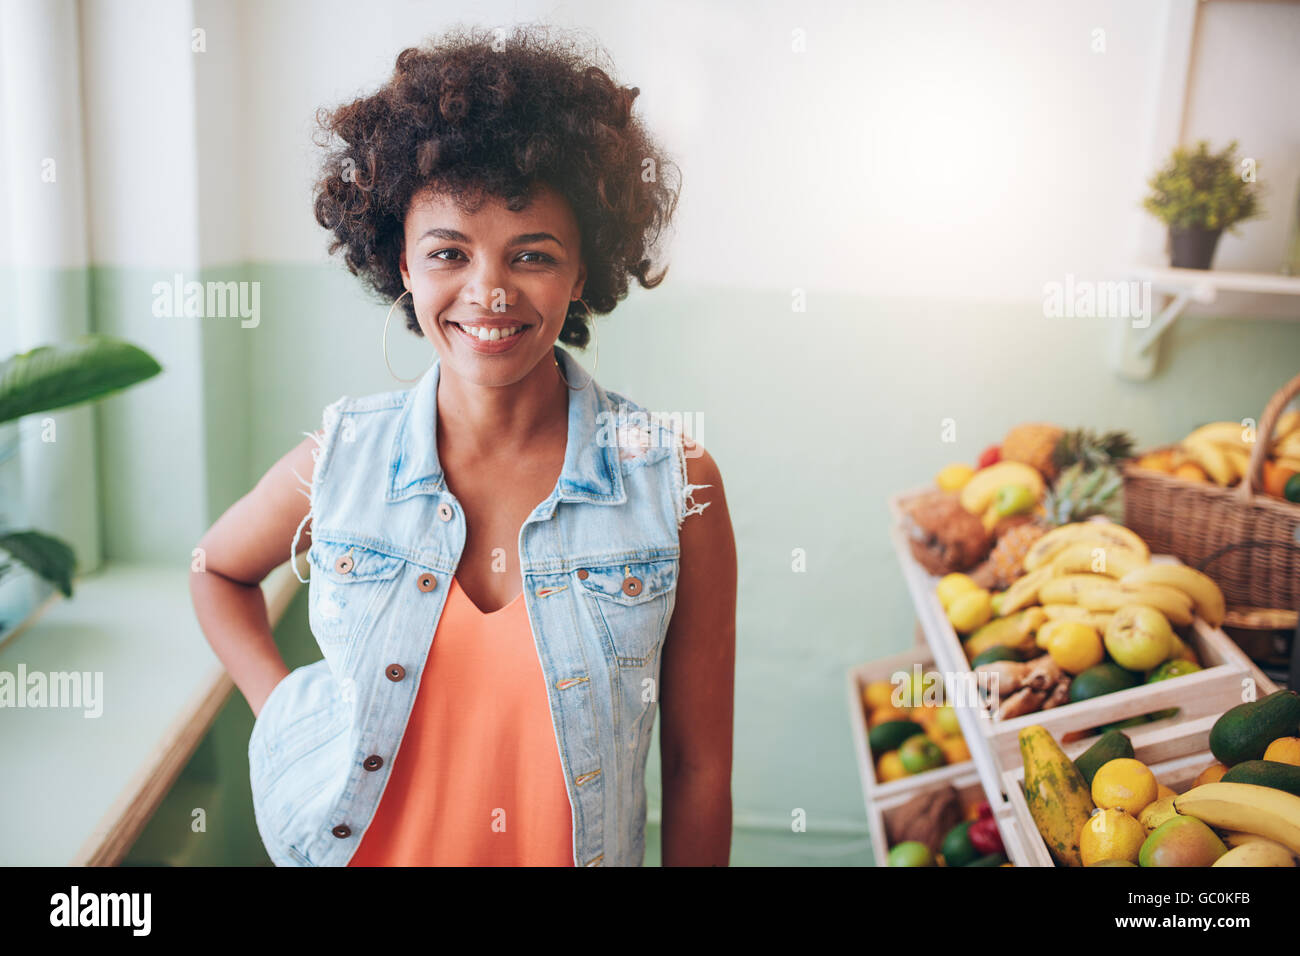 Portrait of happy young juice bar owner looking at camera